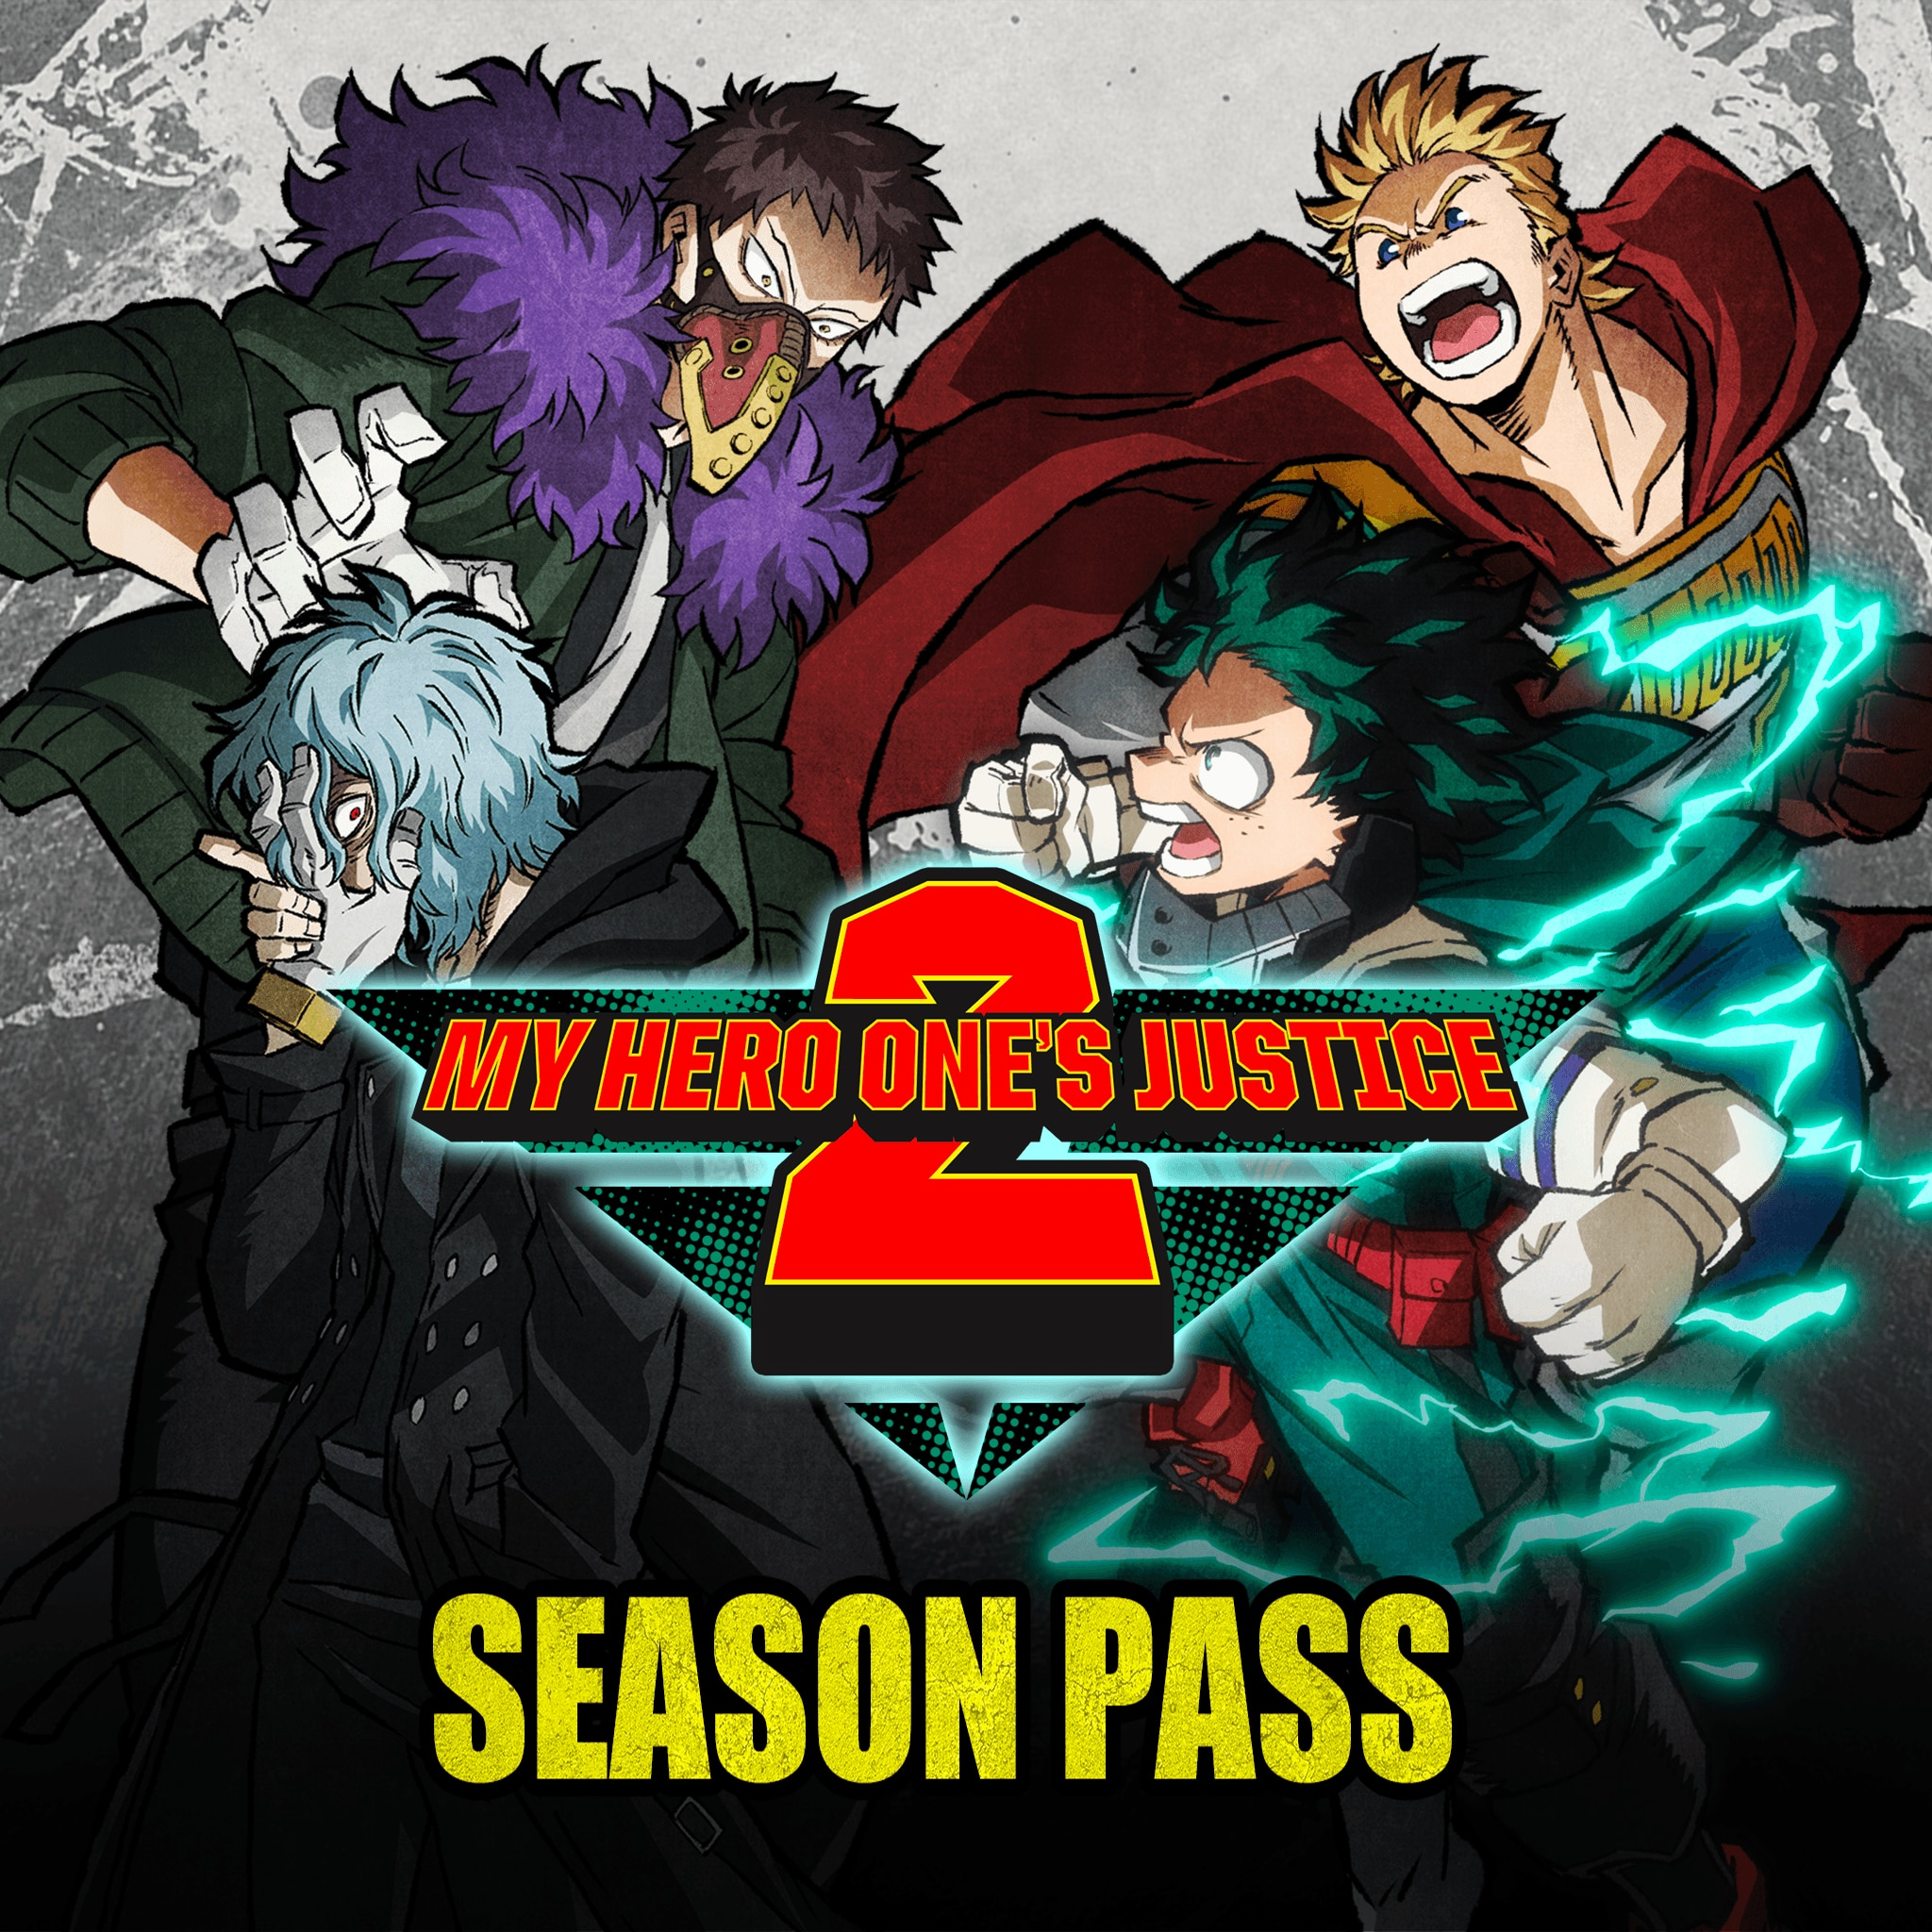 MY HERO ONE'S JUSTICE 2 Season Pass